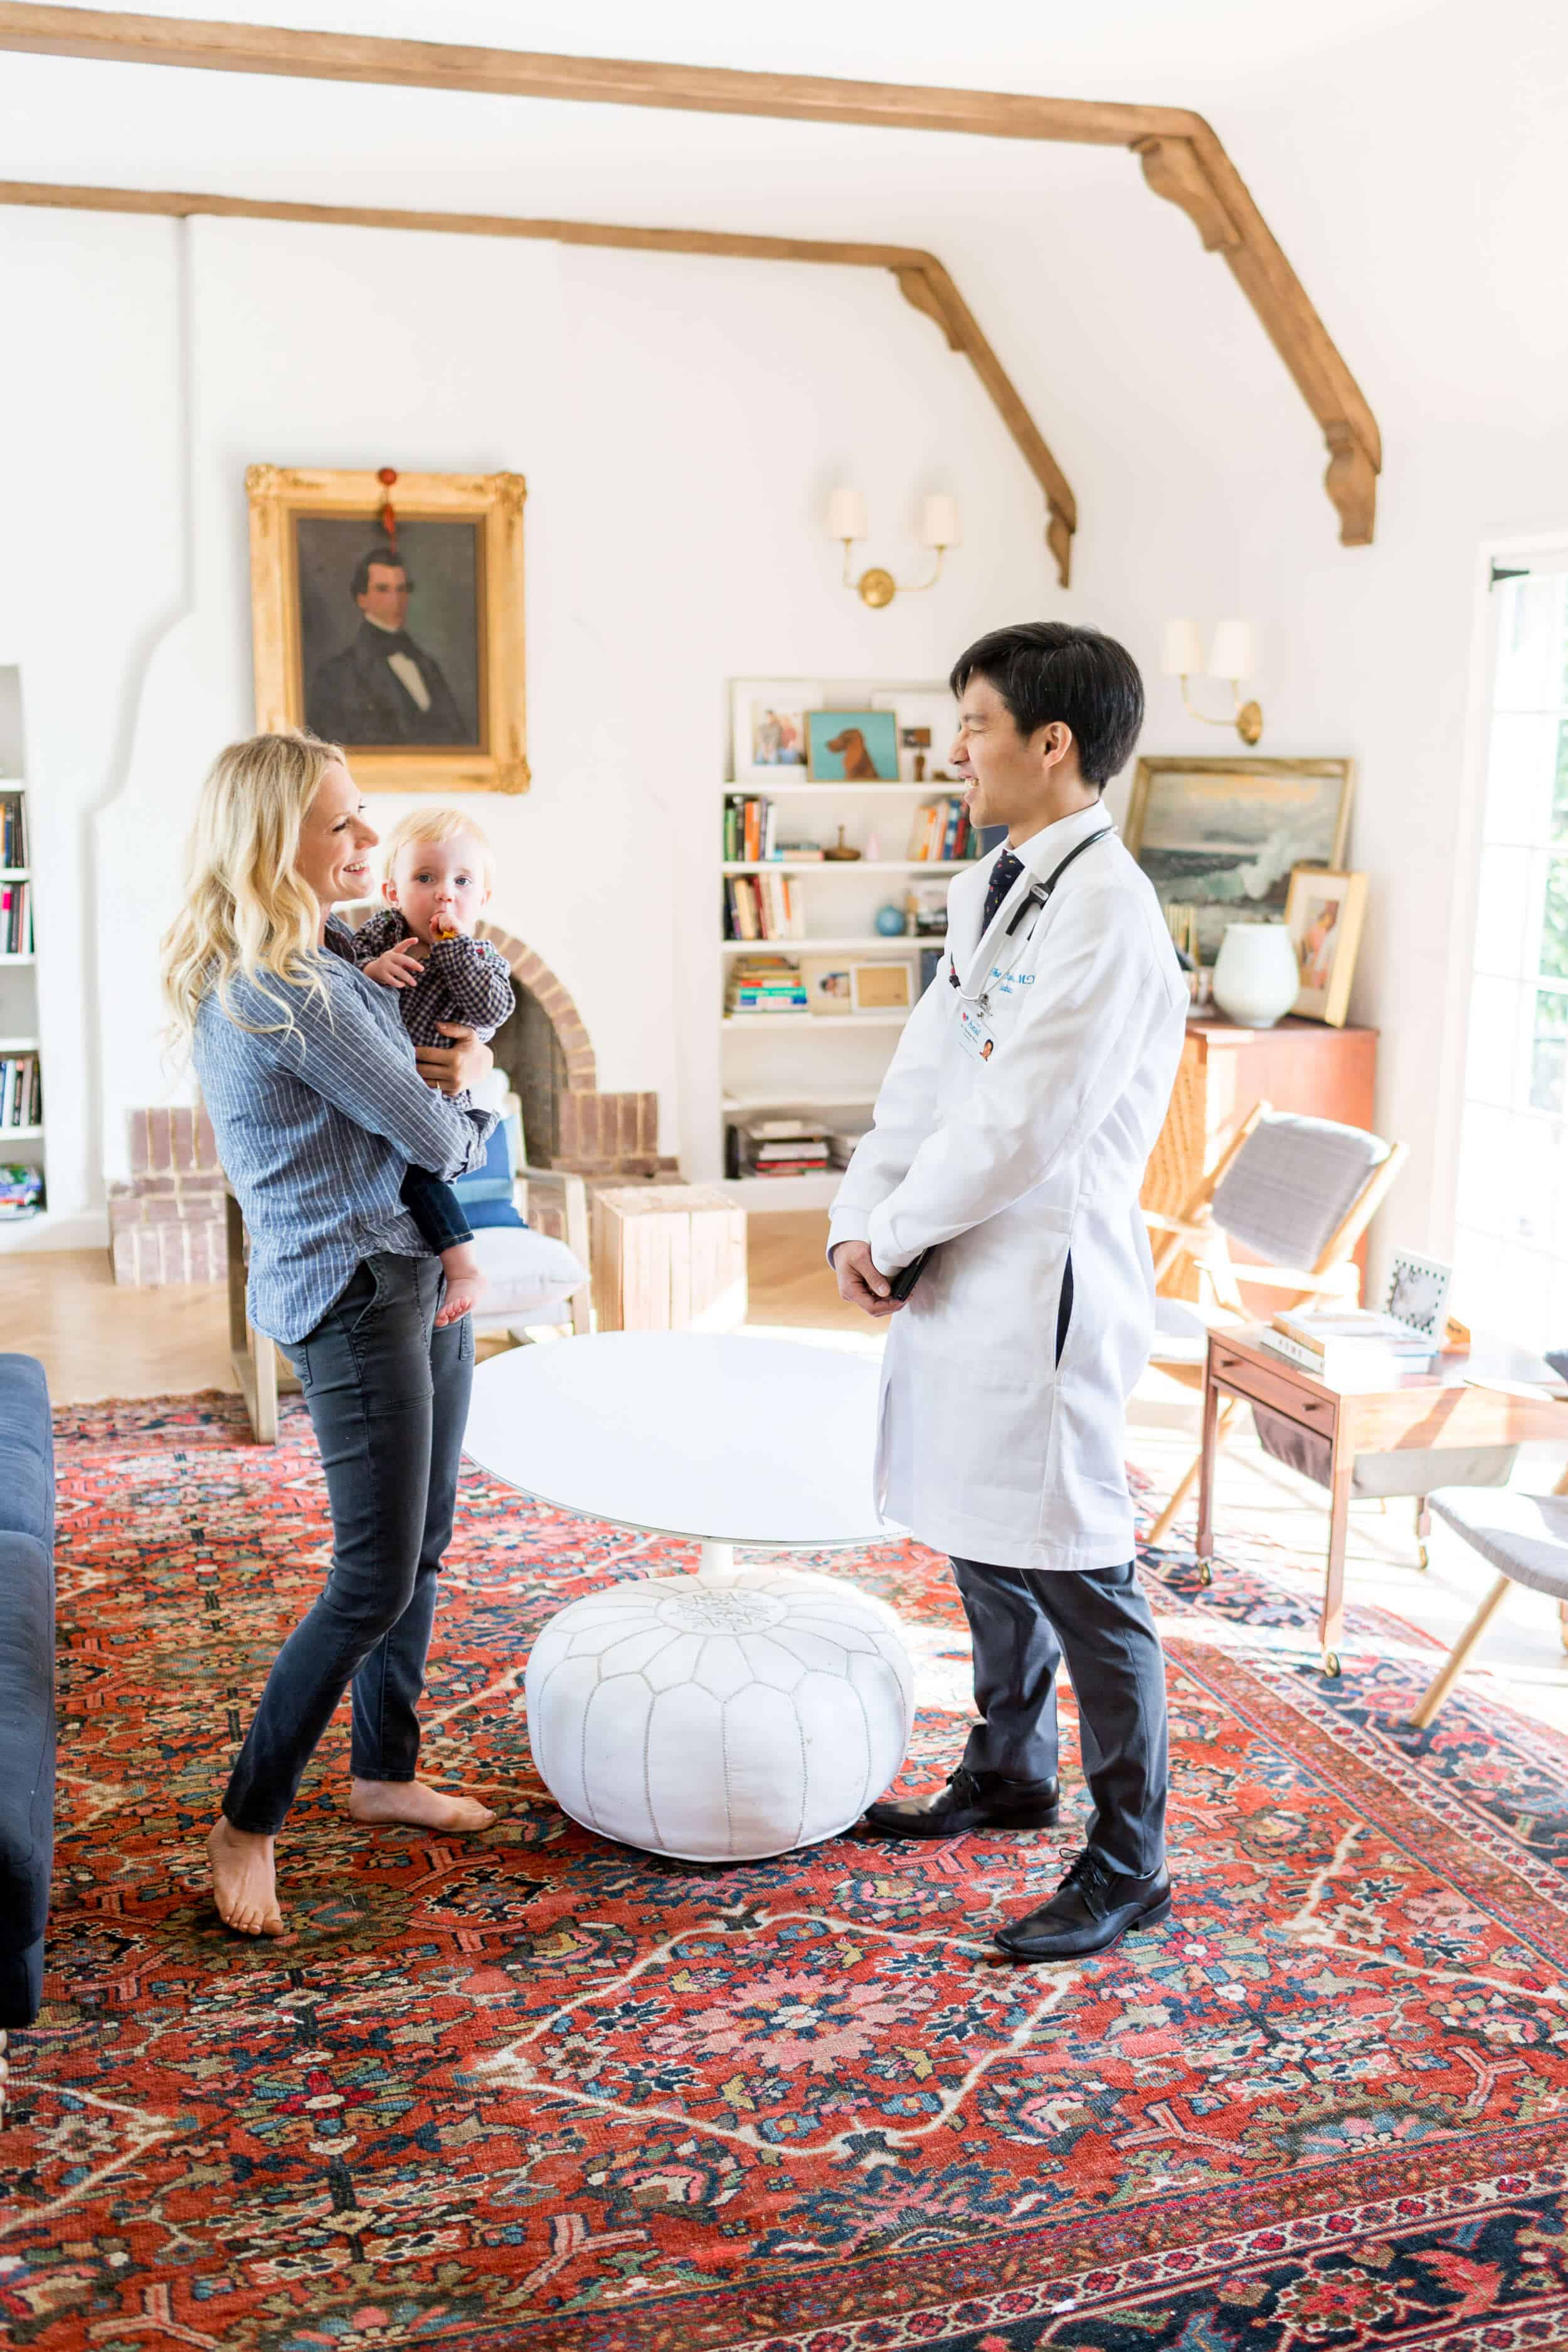 Emily Henderson_Home_Family_In Home_Medicine_Checkup_Doctor_Heal_64